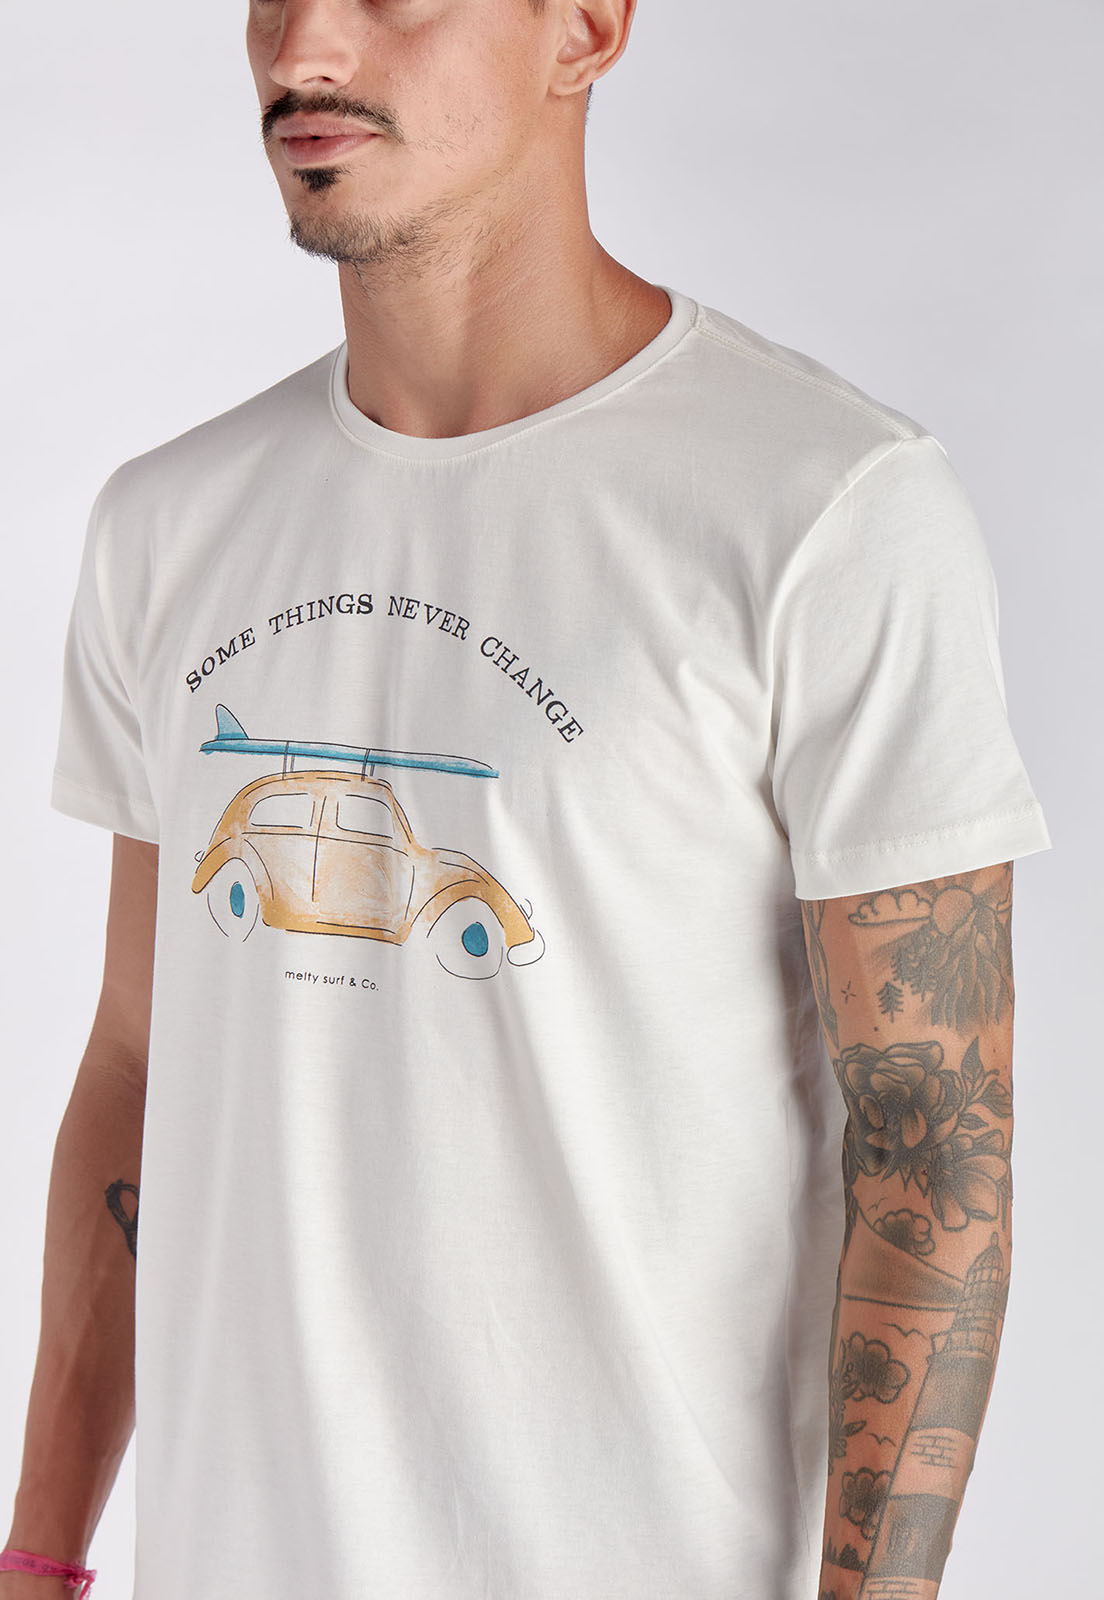 T-shirt Beetle Branco Melty  - melty surf & Co.